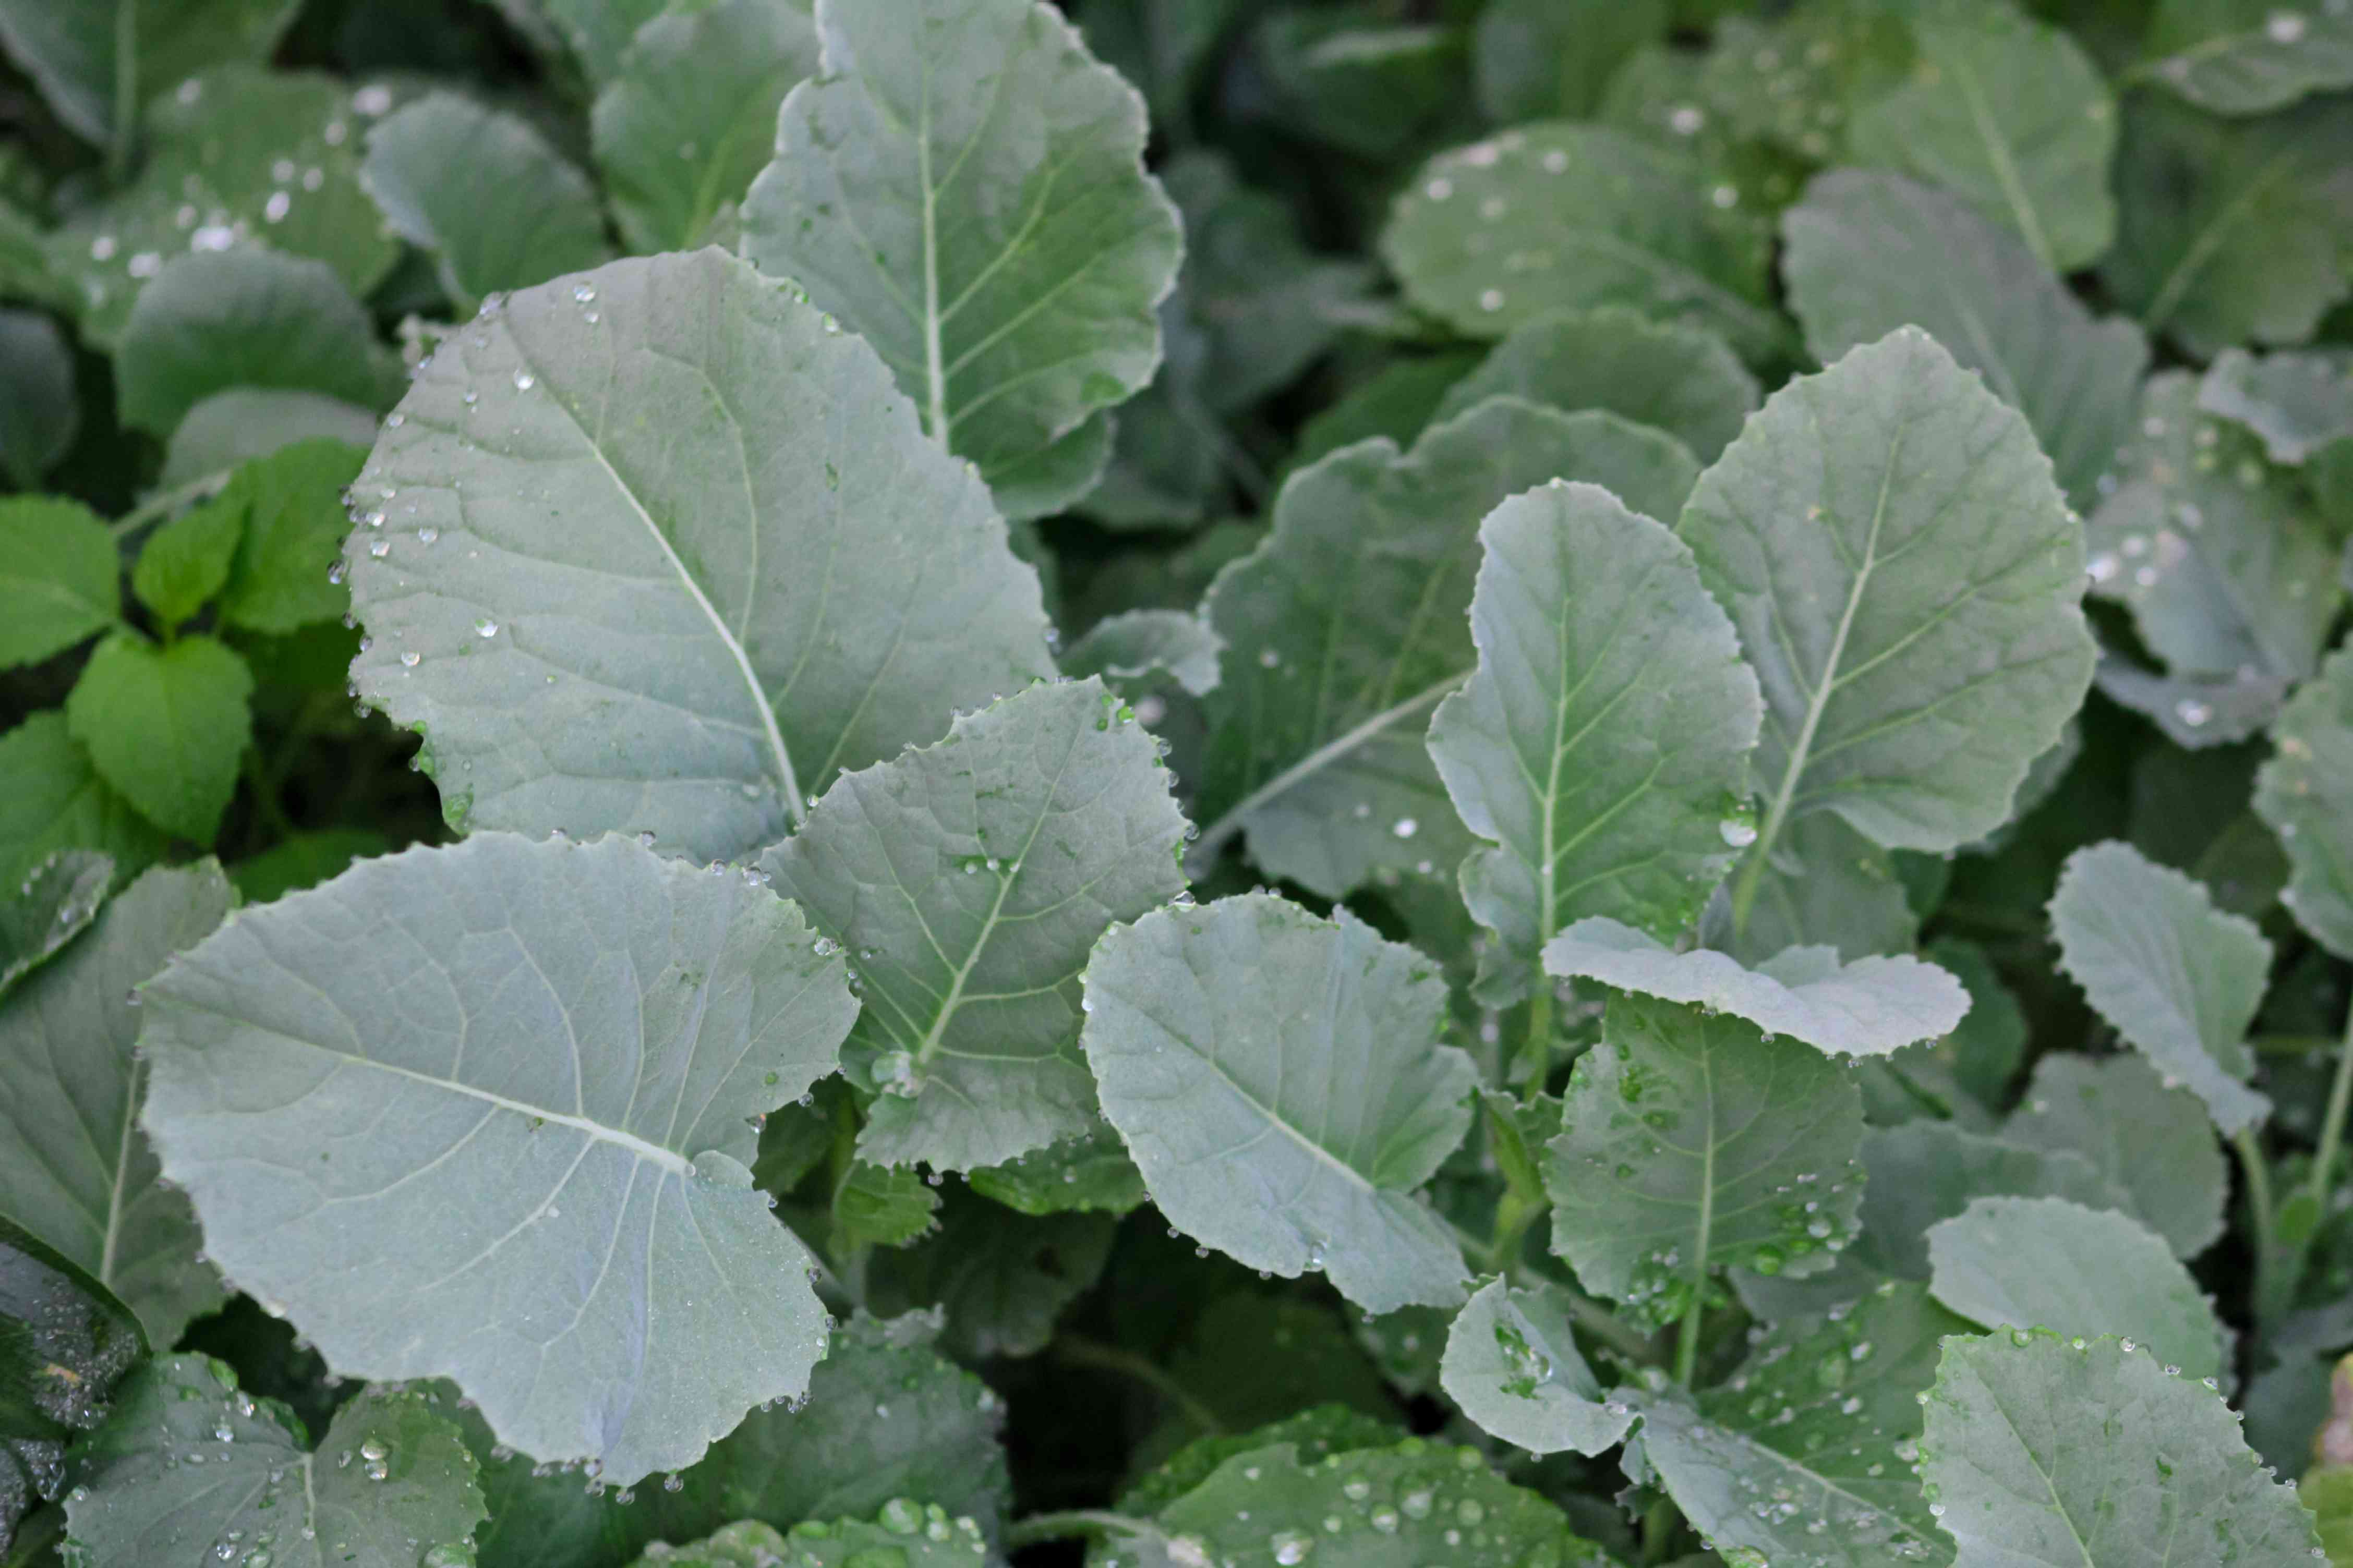 Organic kale leaves with some leaves underneath with water droplets